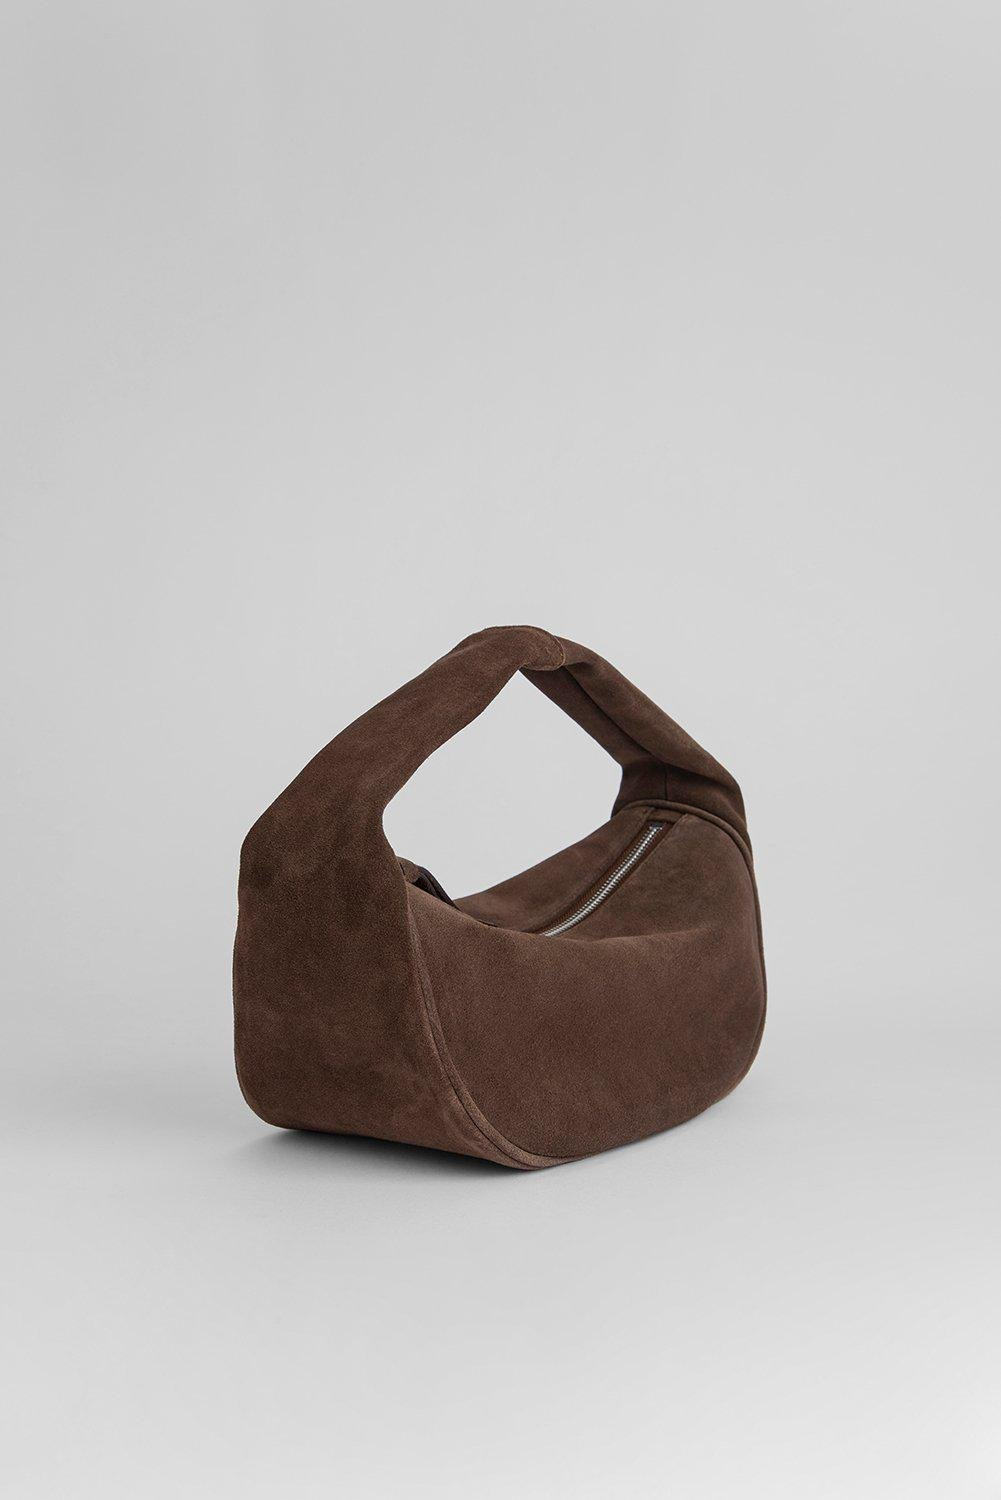 Cush Wood Suede Leather 1